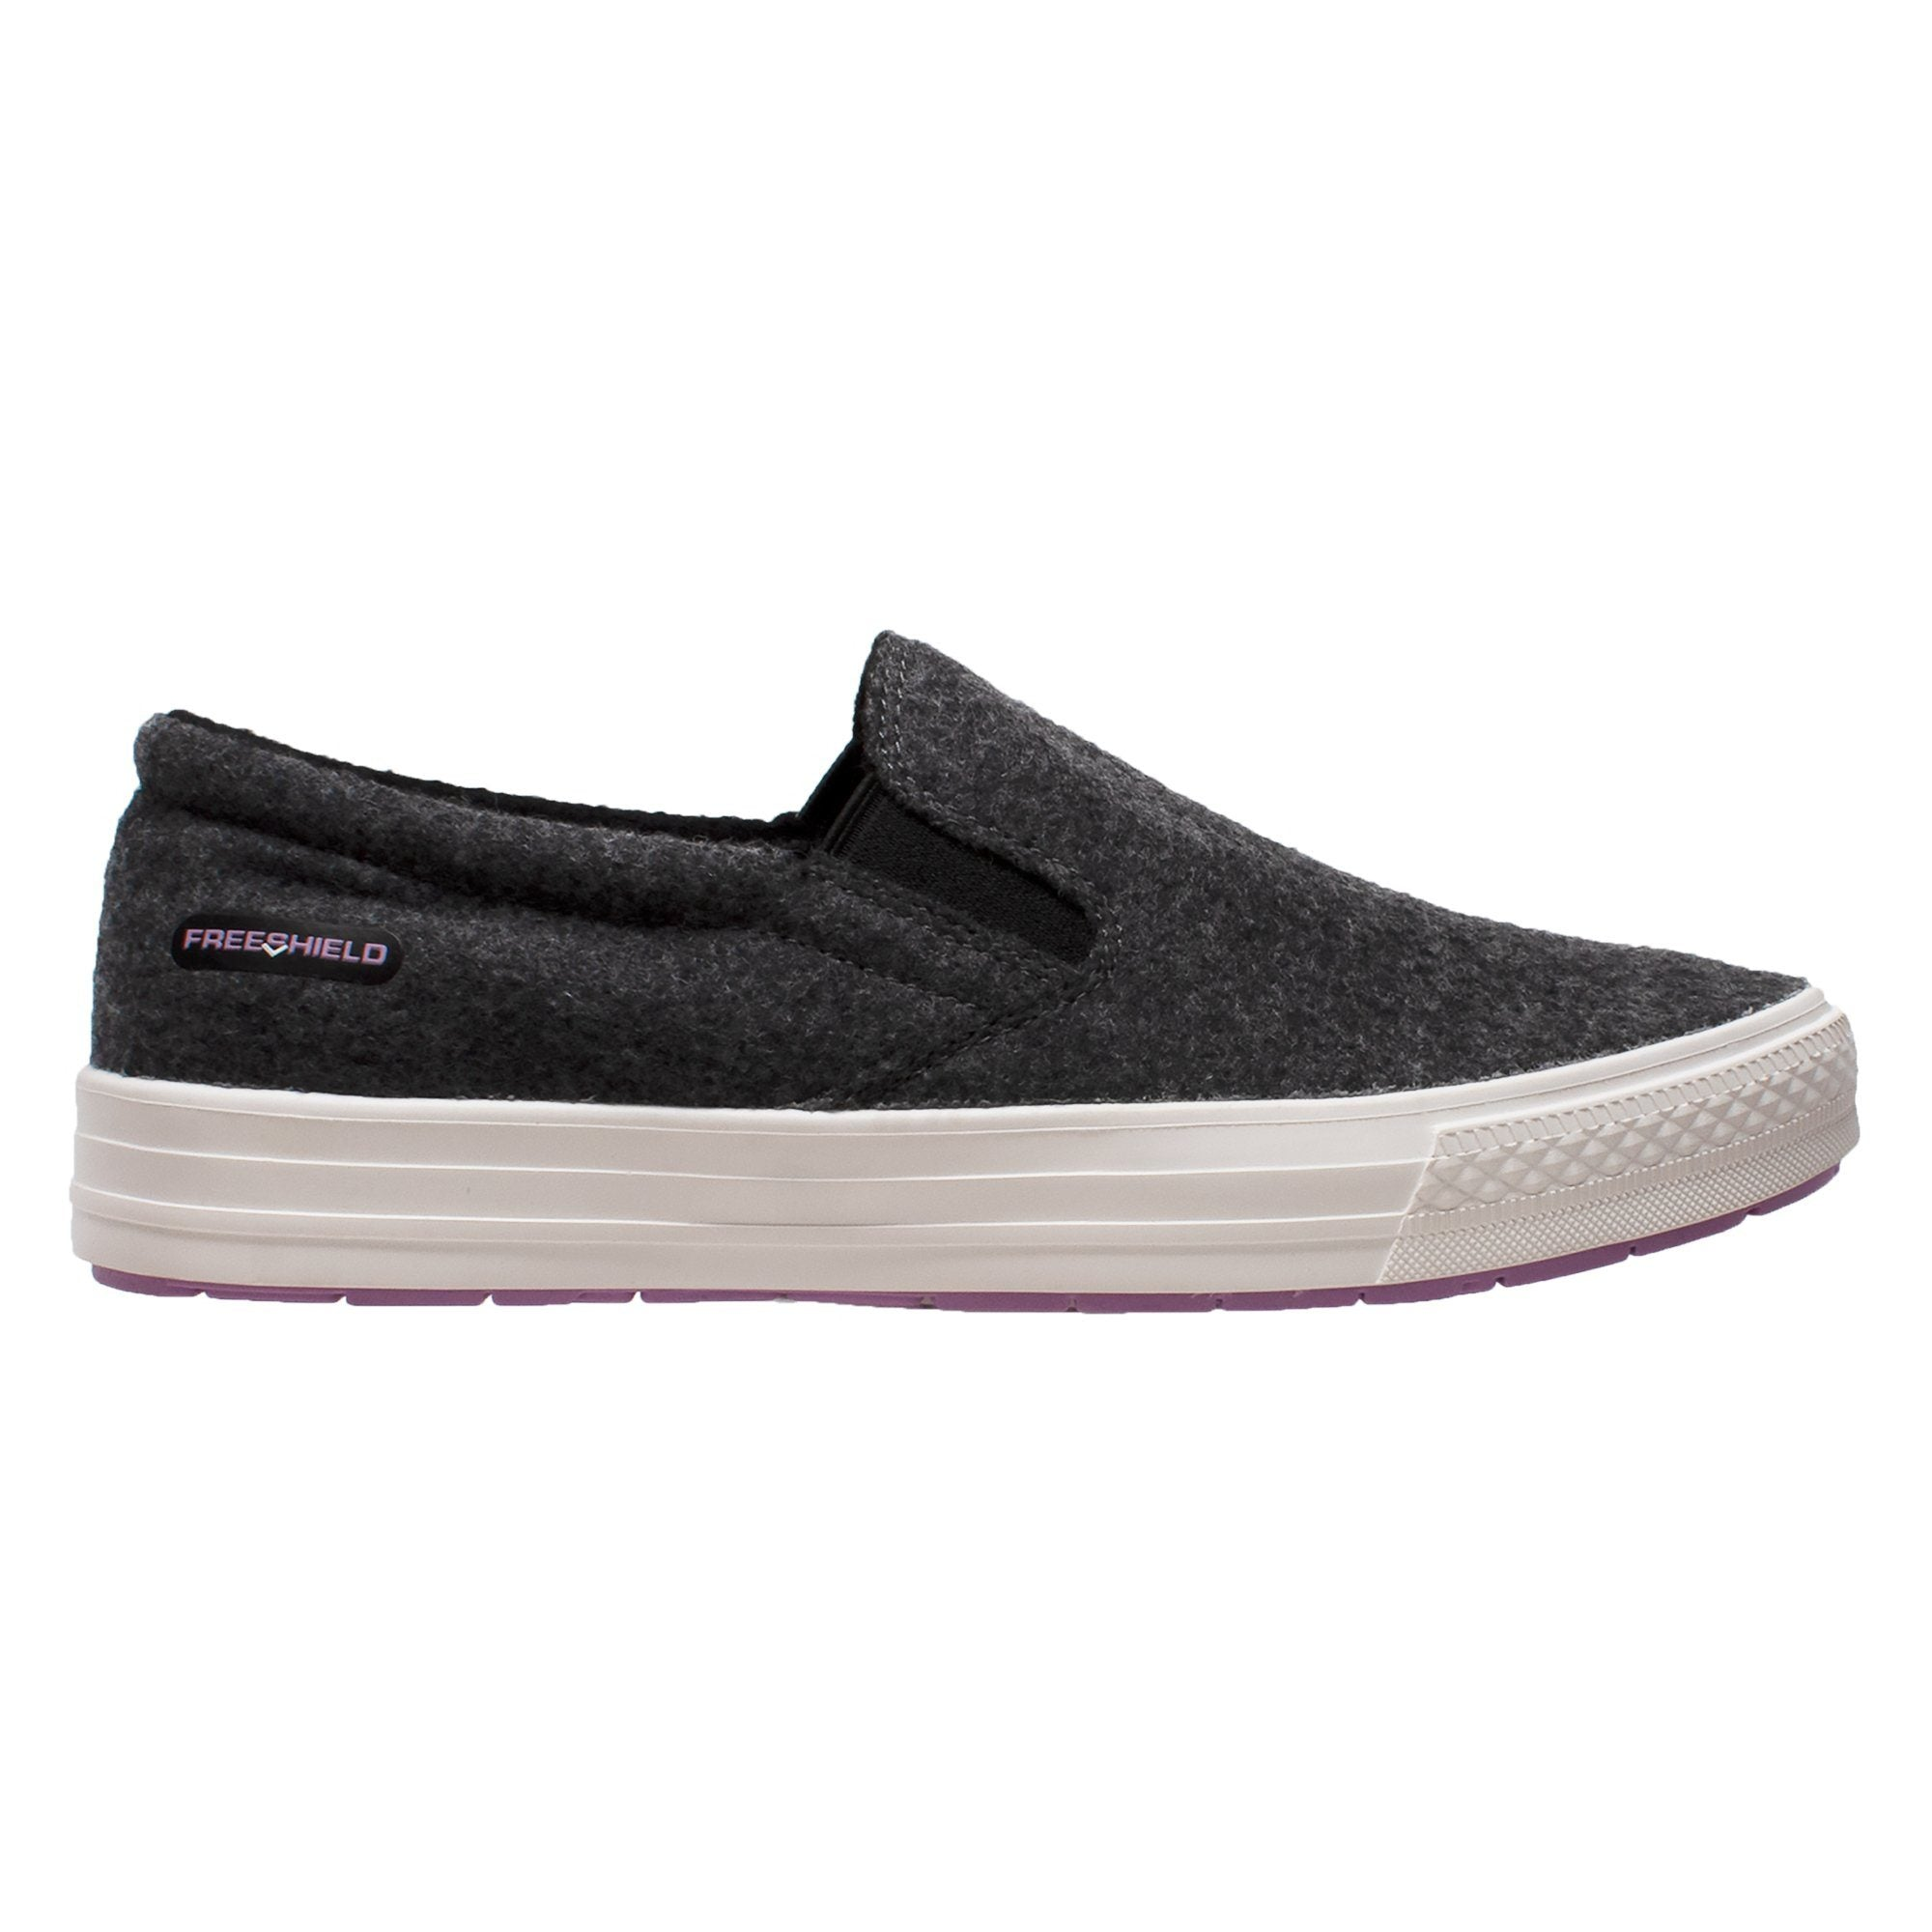 Women's Shoes - Women's Real Wool Casual Slip On Charcoal